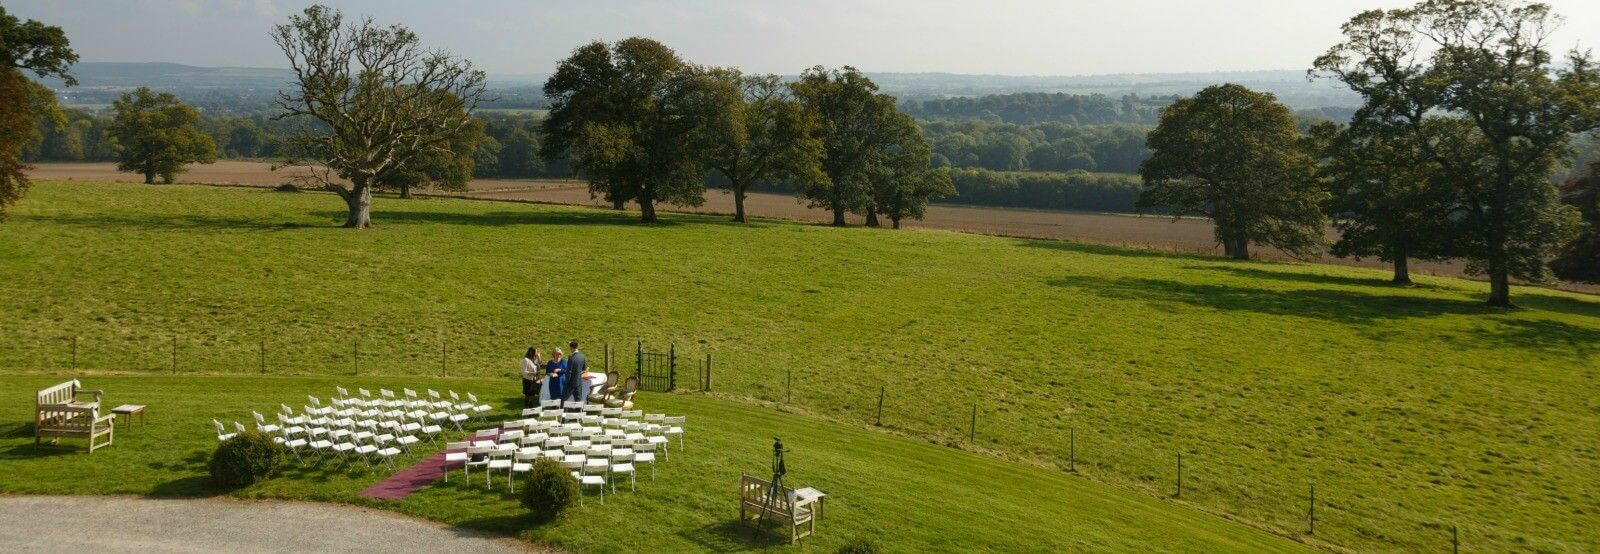 wedding set up front lawn ceremony